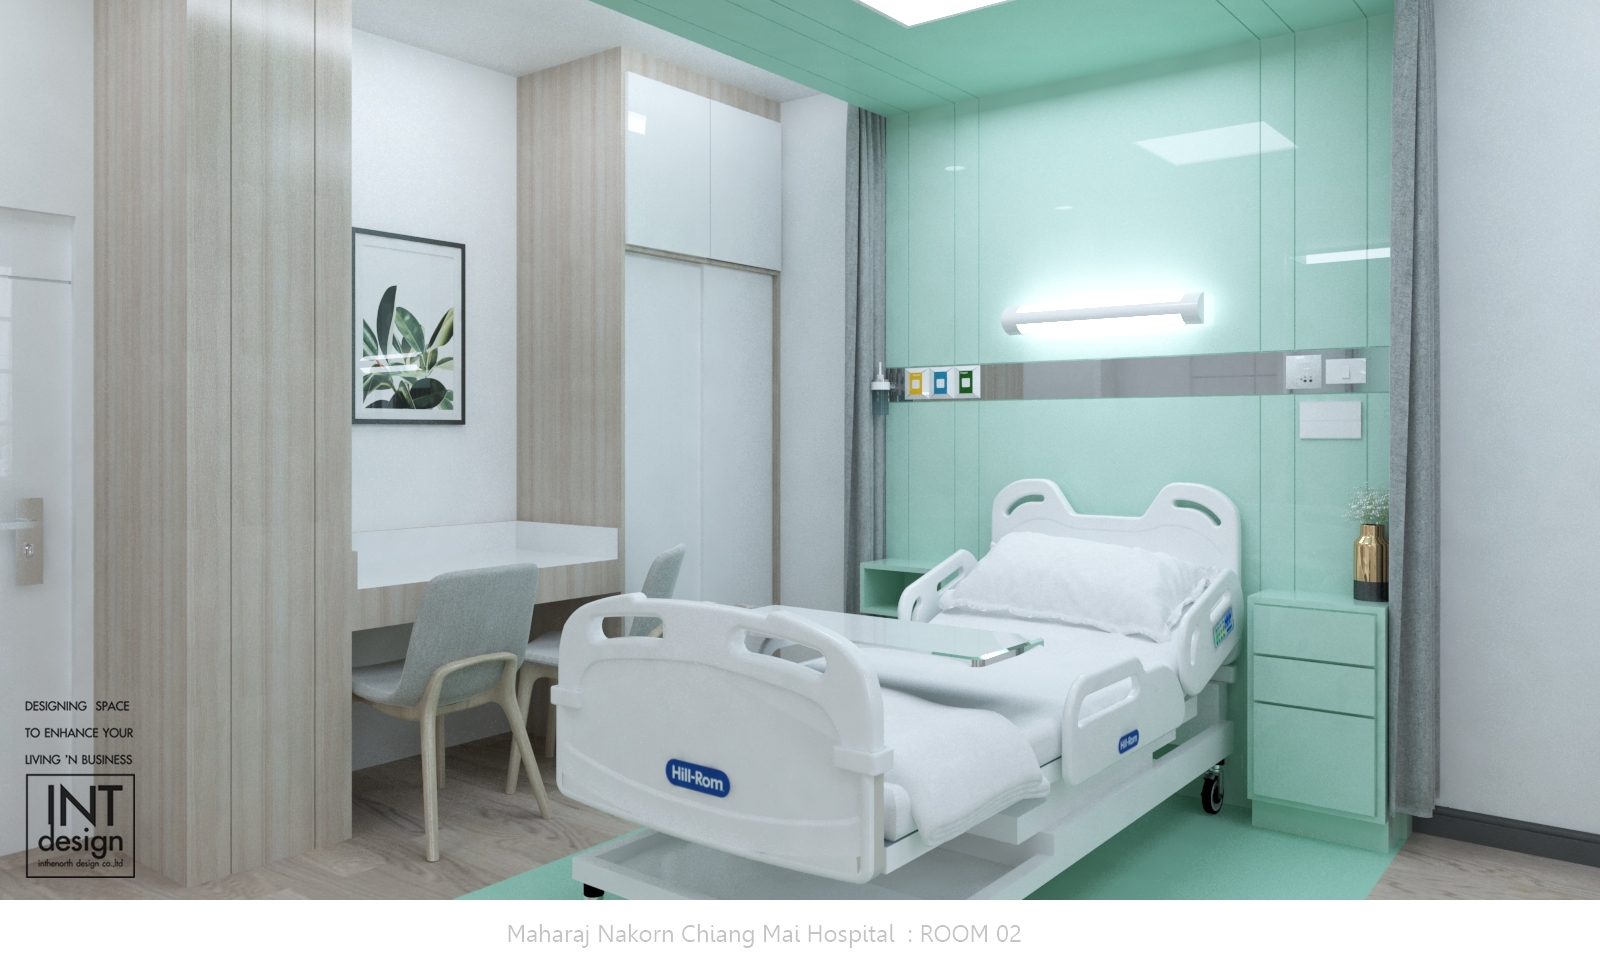 INT Hospital space 02